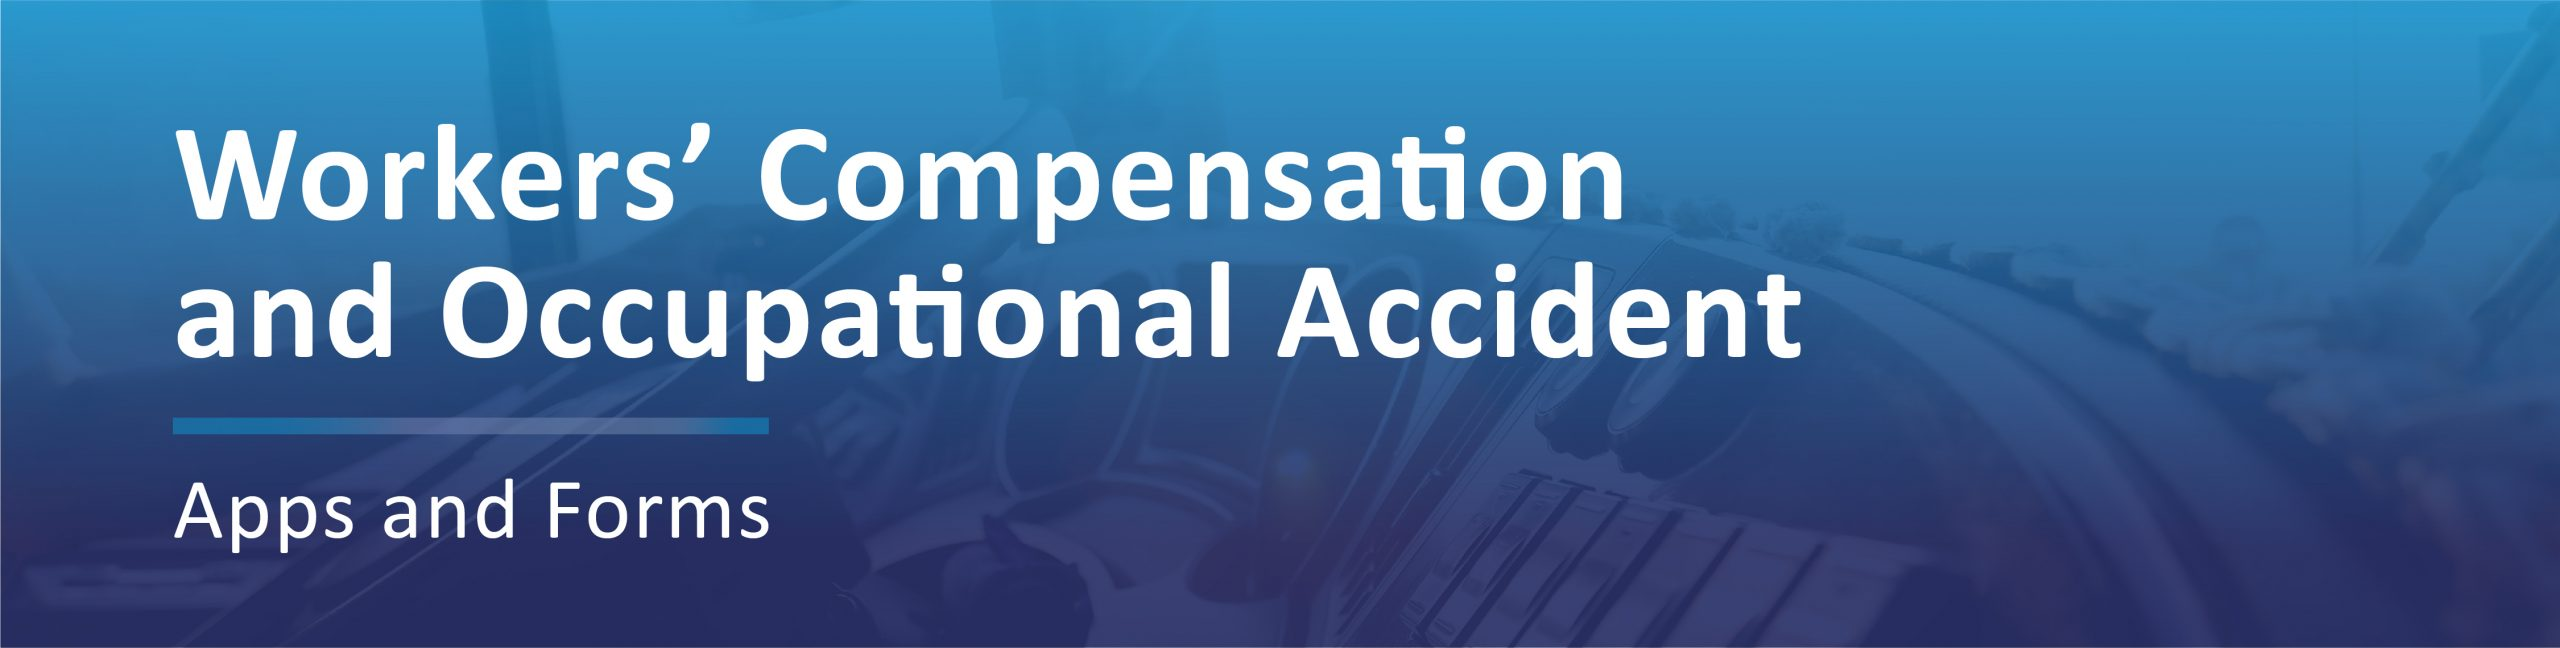 Workers Compensation and Occupational Accident Applications Banner